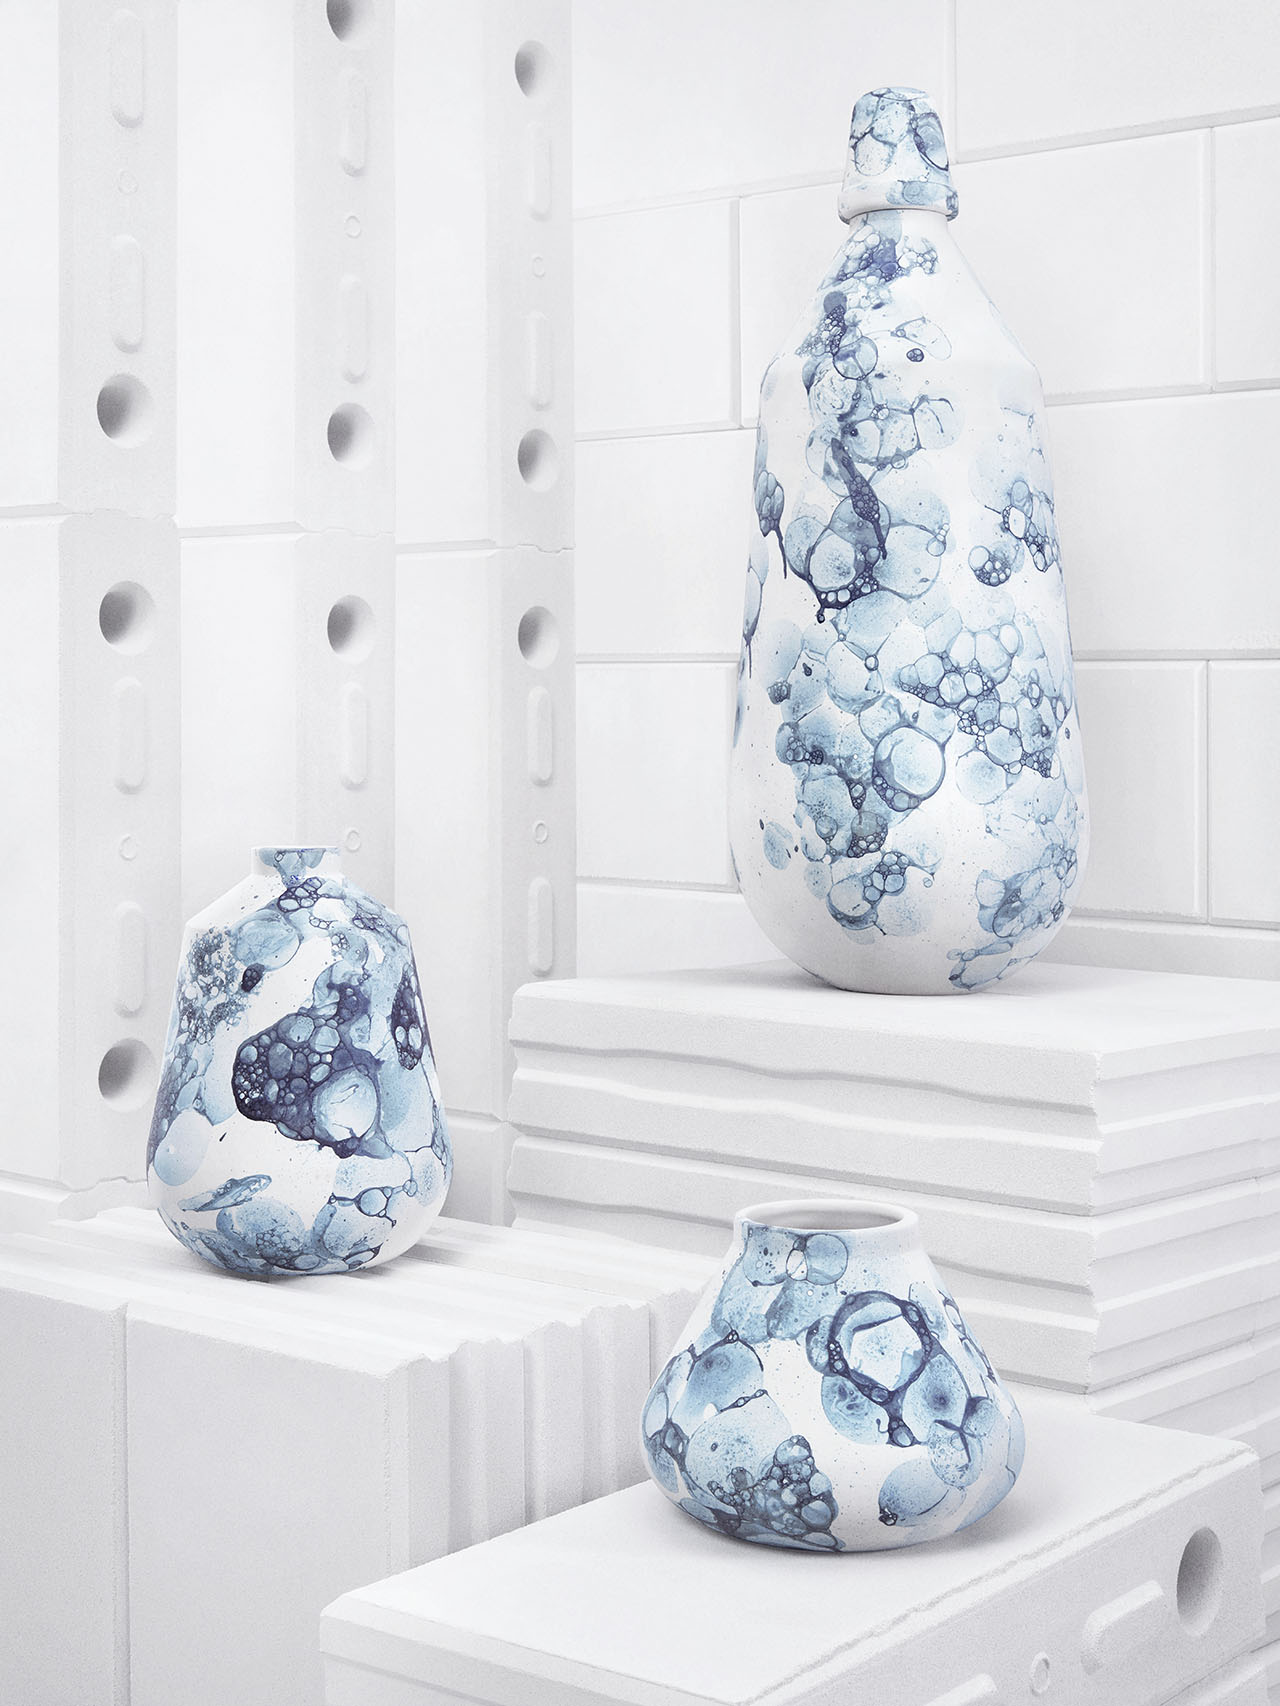 Bubblegraphy series of vases by Adrianus Kundert in collaboration with Thomas van der Sman for Oddness.  The pattern on each vase is created by a special process of blowing air bubbles in the glaze. Photo © Oddness.